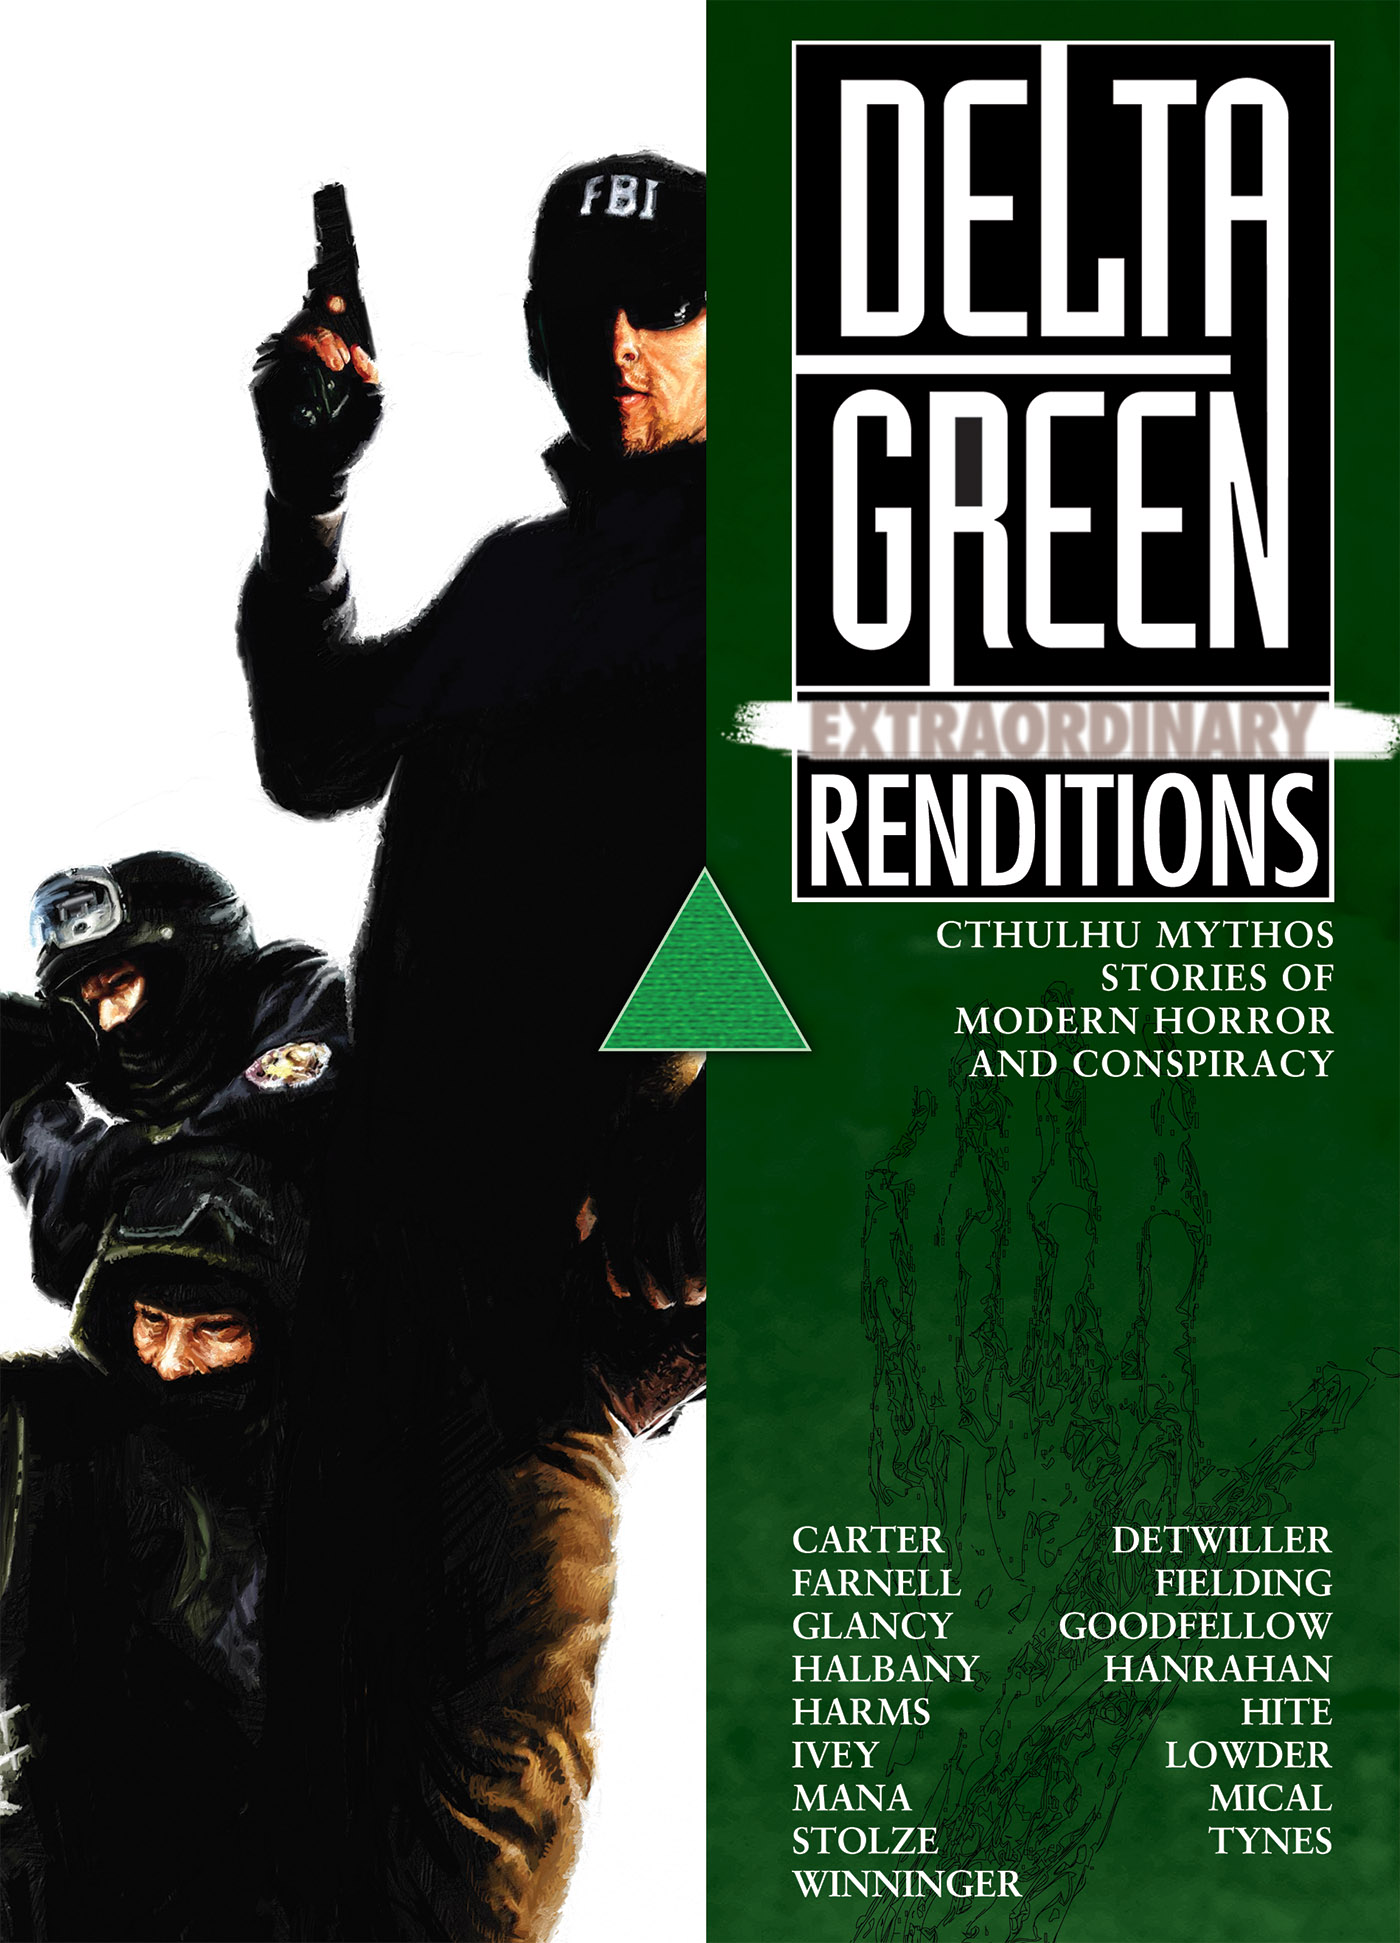 Delta Green Extraordinary Renditions cover front 1400px